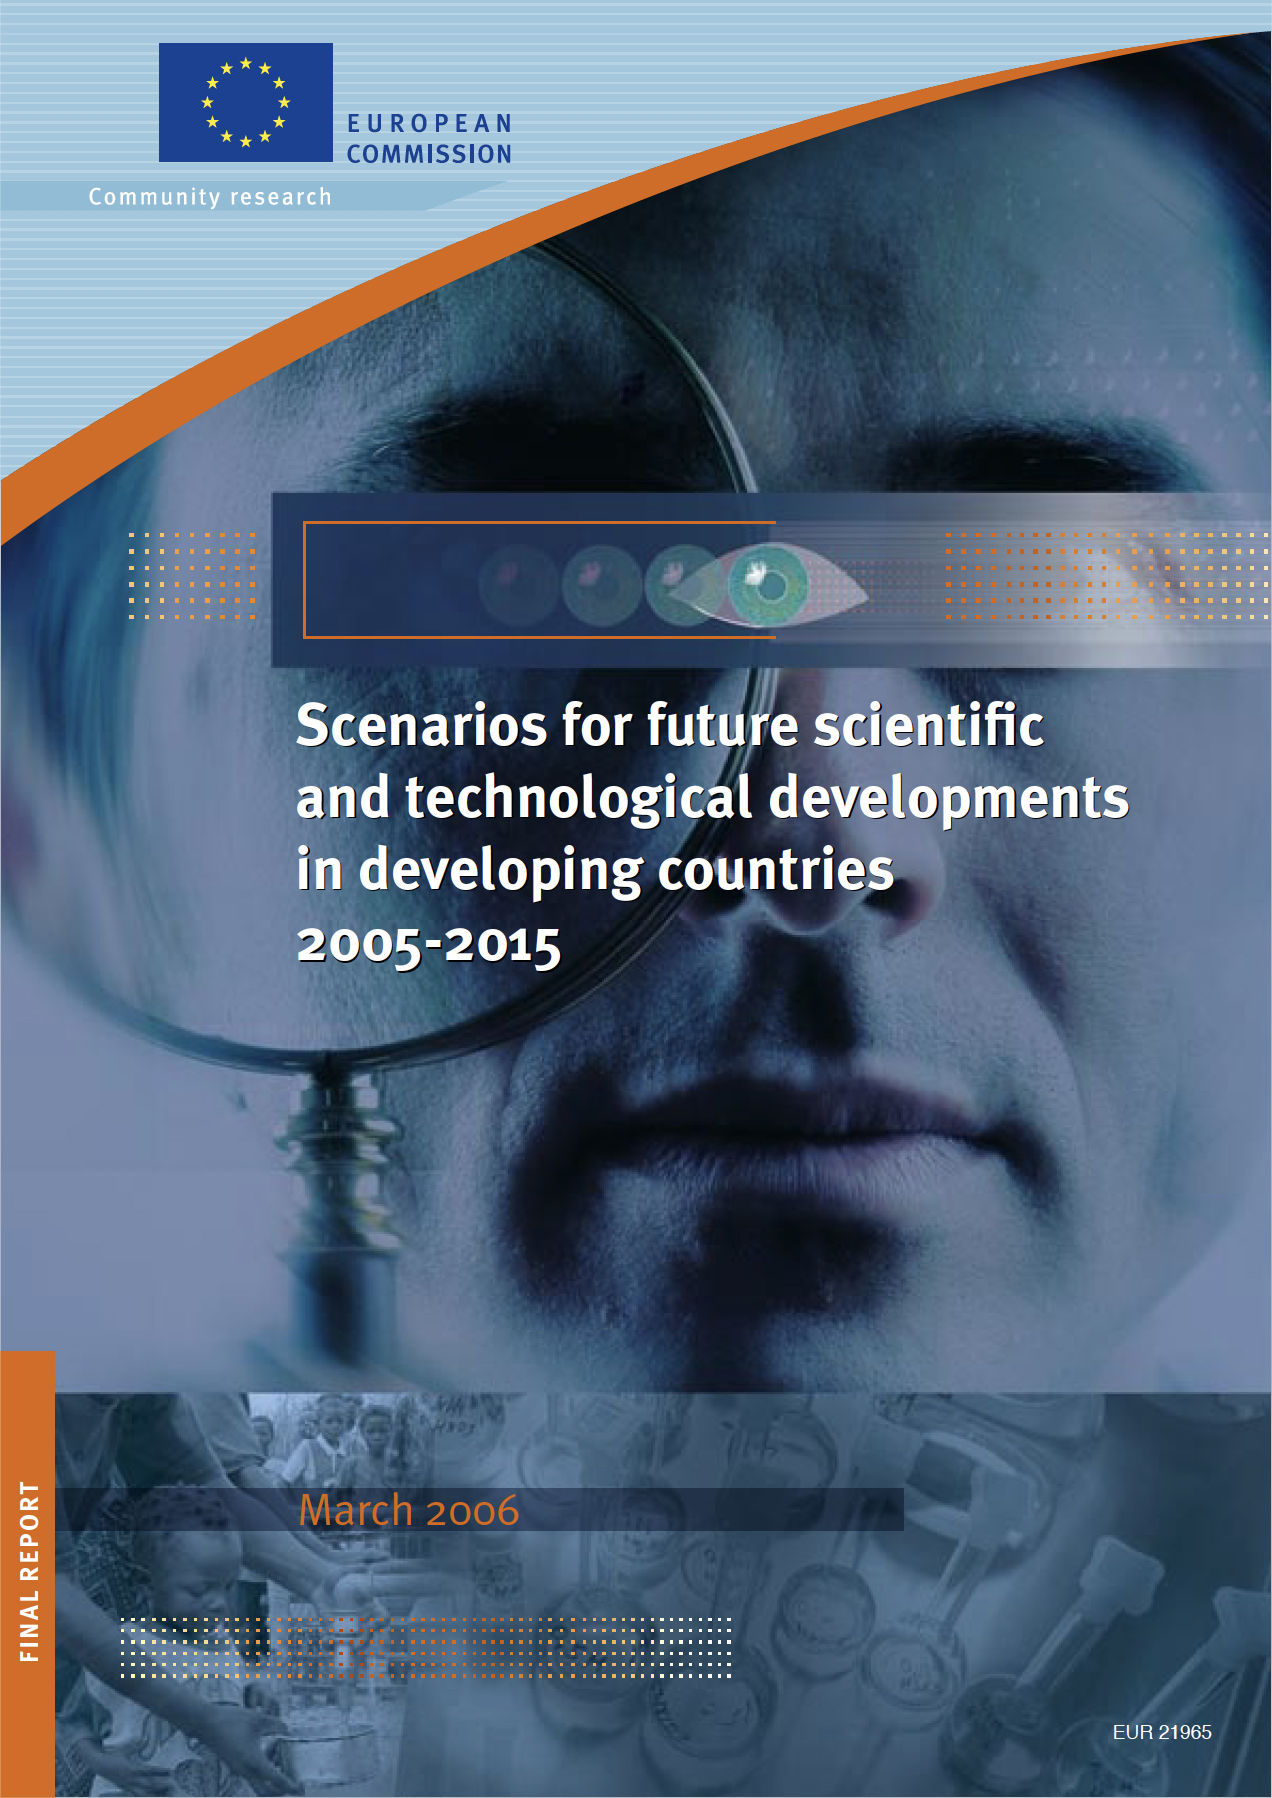 Scenarios for future scientifific and technological developments in developing countries 2005-2015